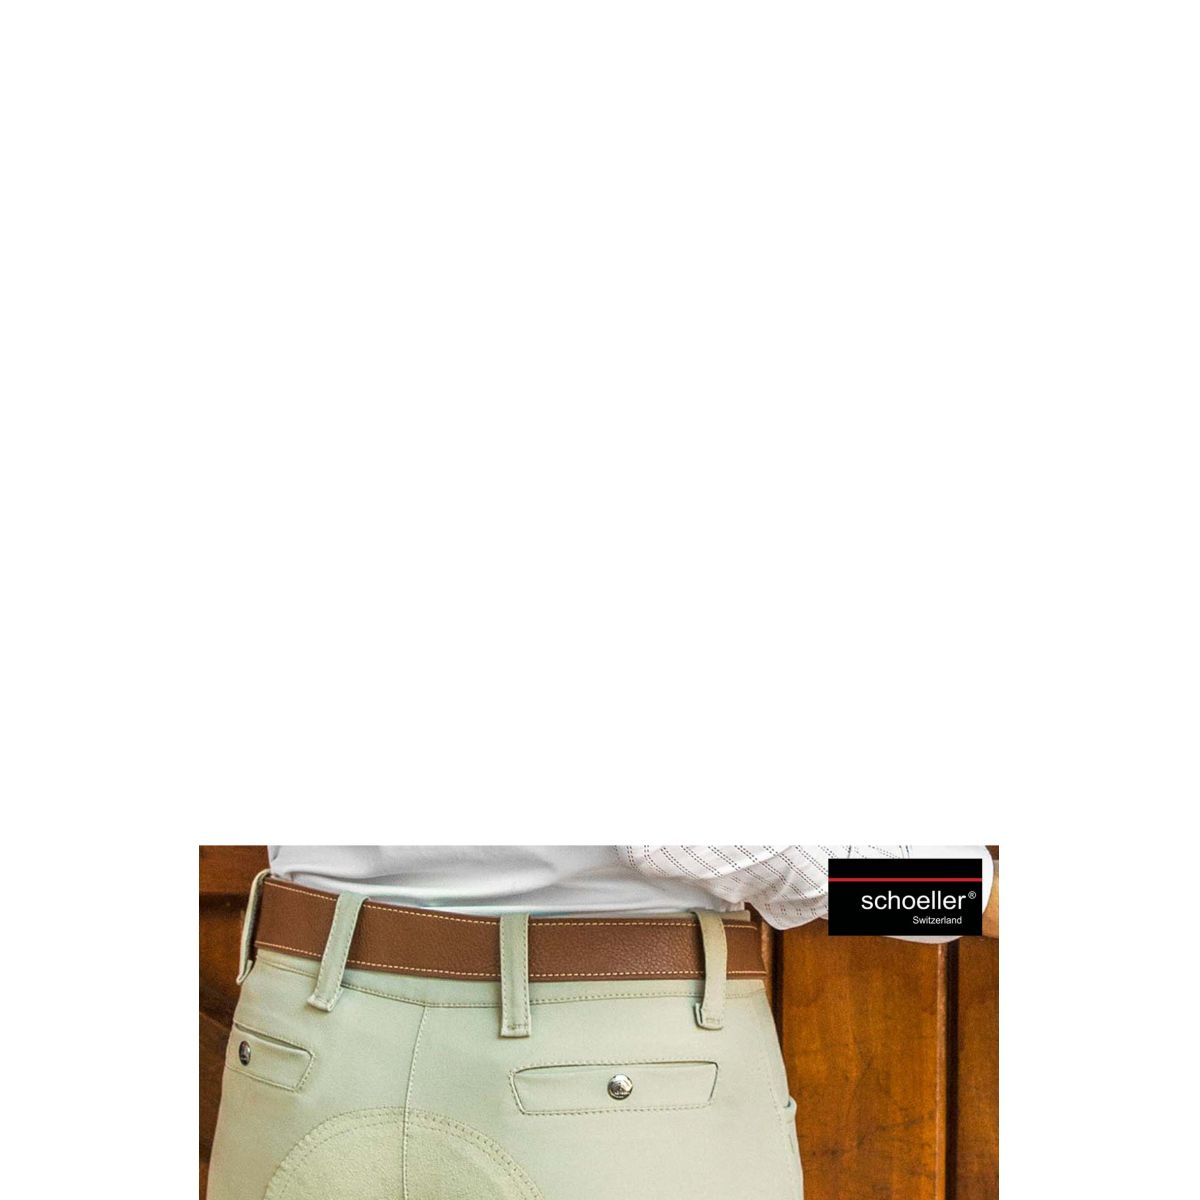 CULOTE FIT BUTTERFLY (JOELHO EM COURO)